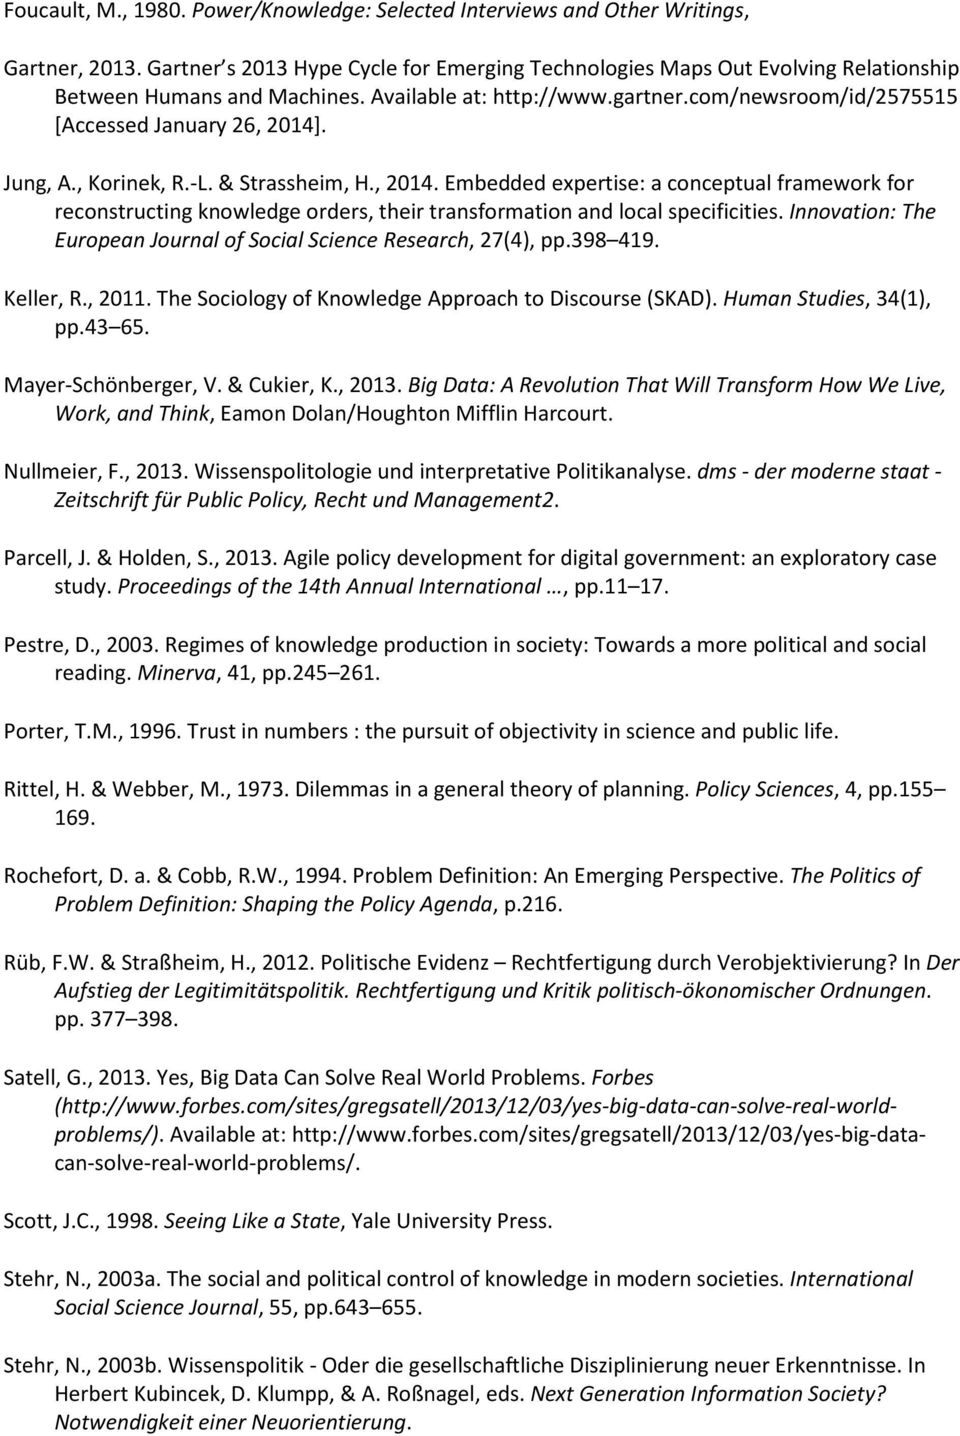 Jung, A., Korinek, R.-L. & Strassheim, H., 2014. Embedded expertise: a conceptual framework for reconstructing knowledge orders, their transformation and local specificities.